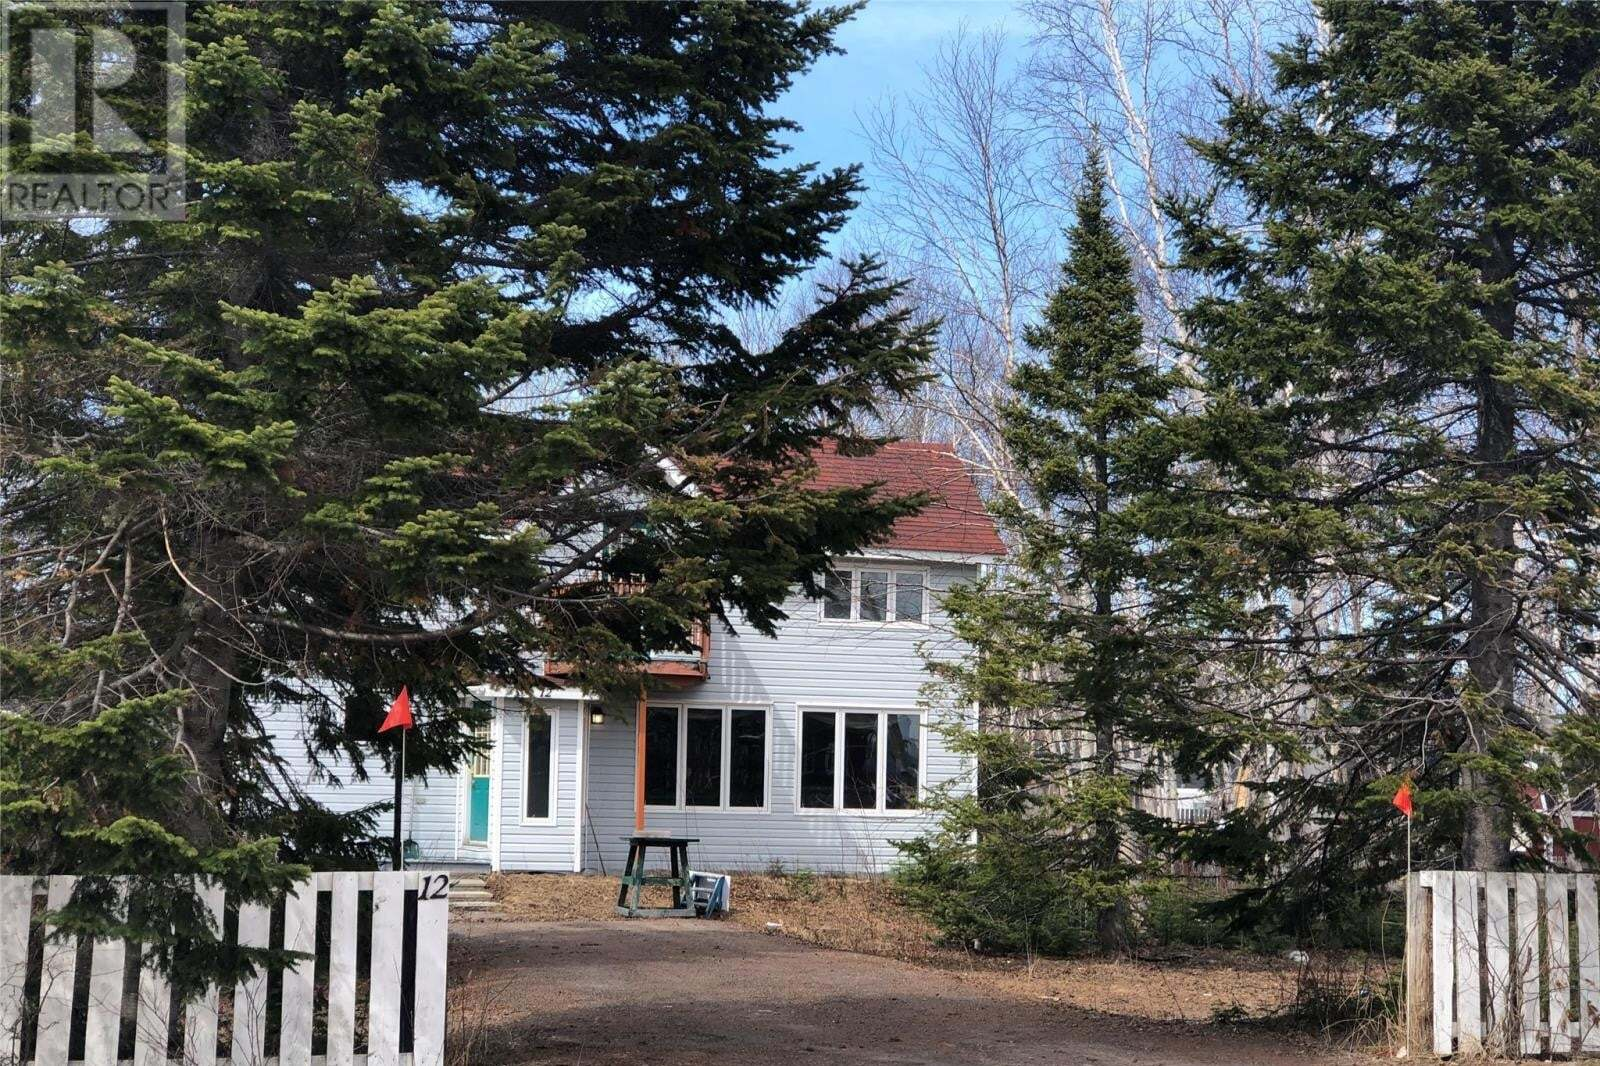 House for sale at 12 Hamilton River Rd Happy Valley - Goose Bay Newfoundland - MLS: 1209198